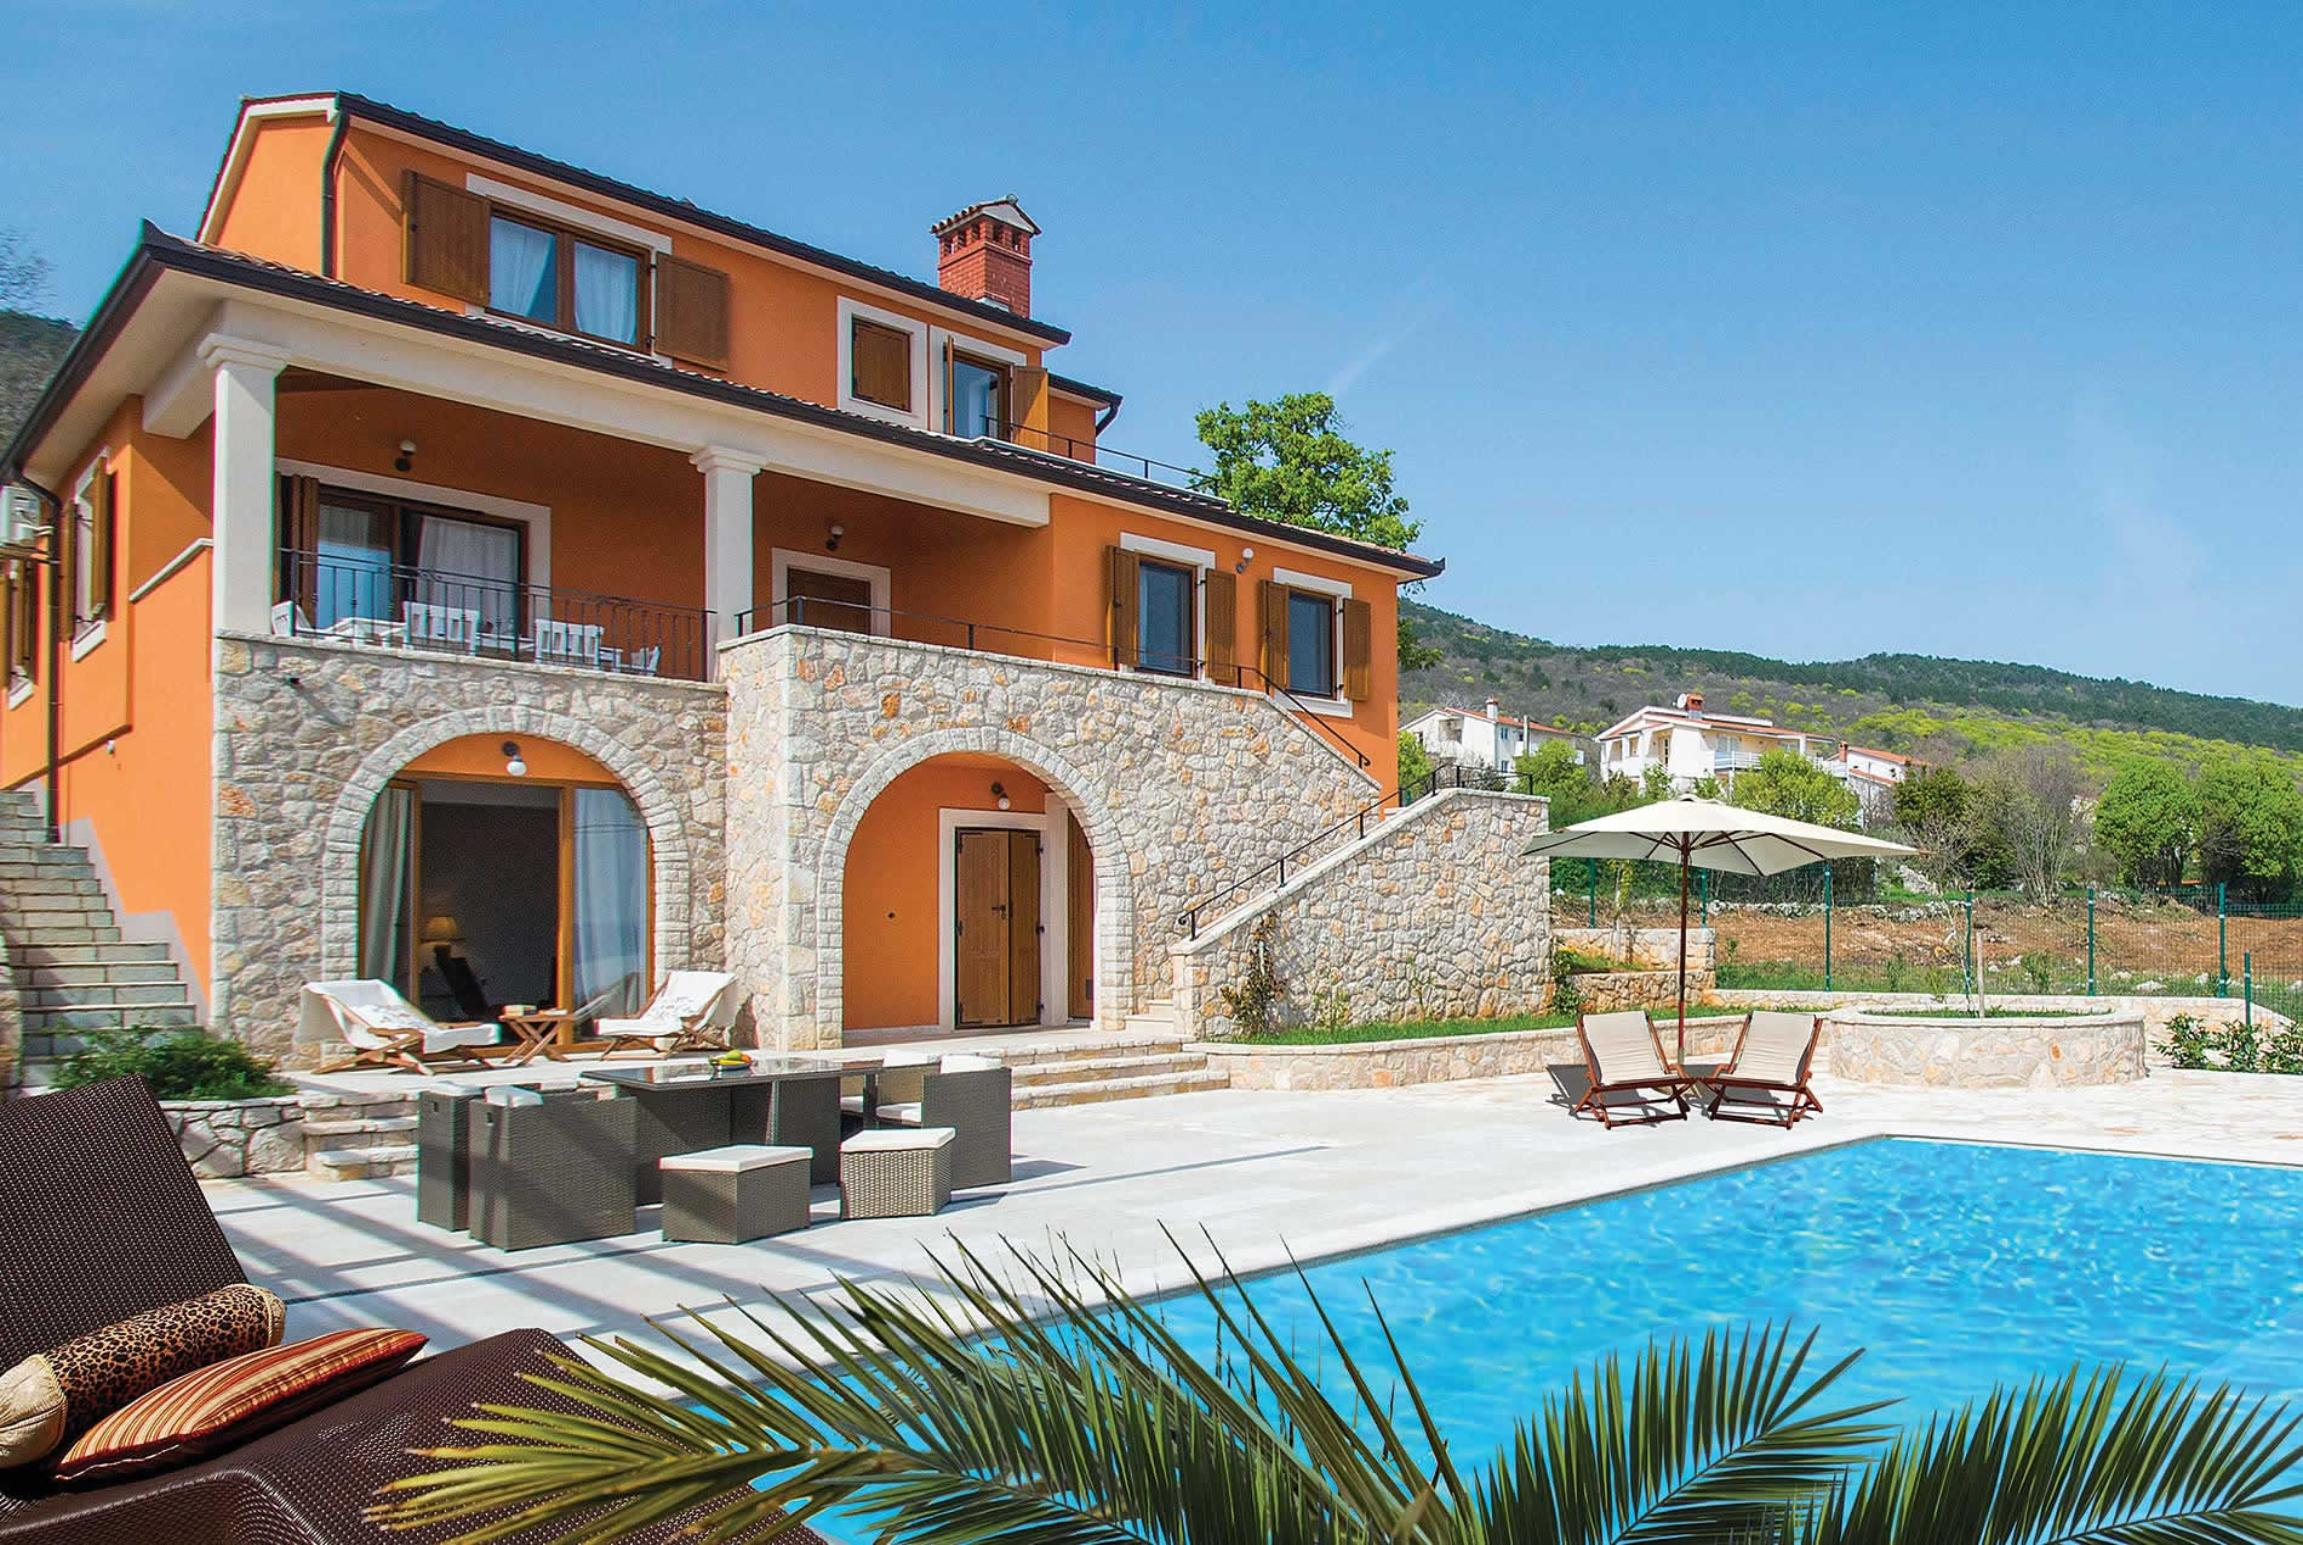 Read more about La Beata villa